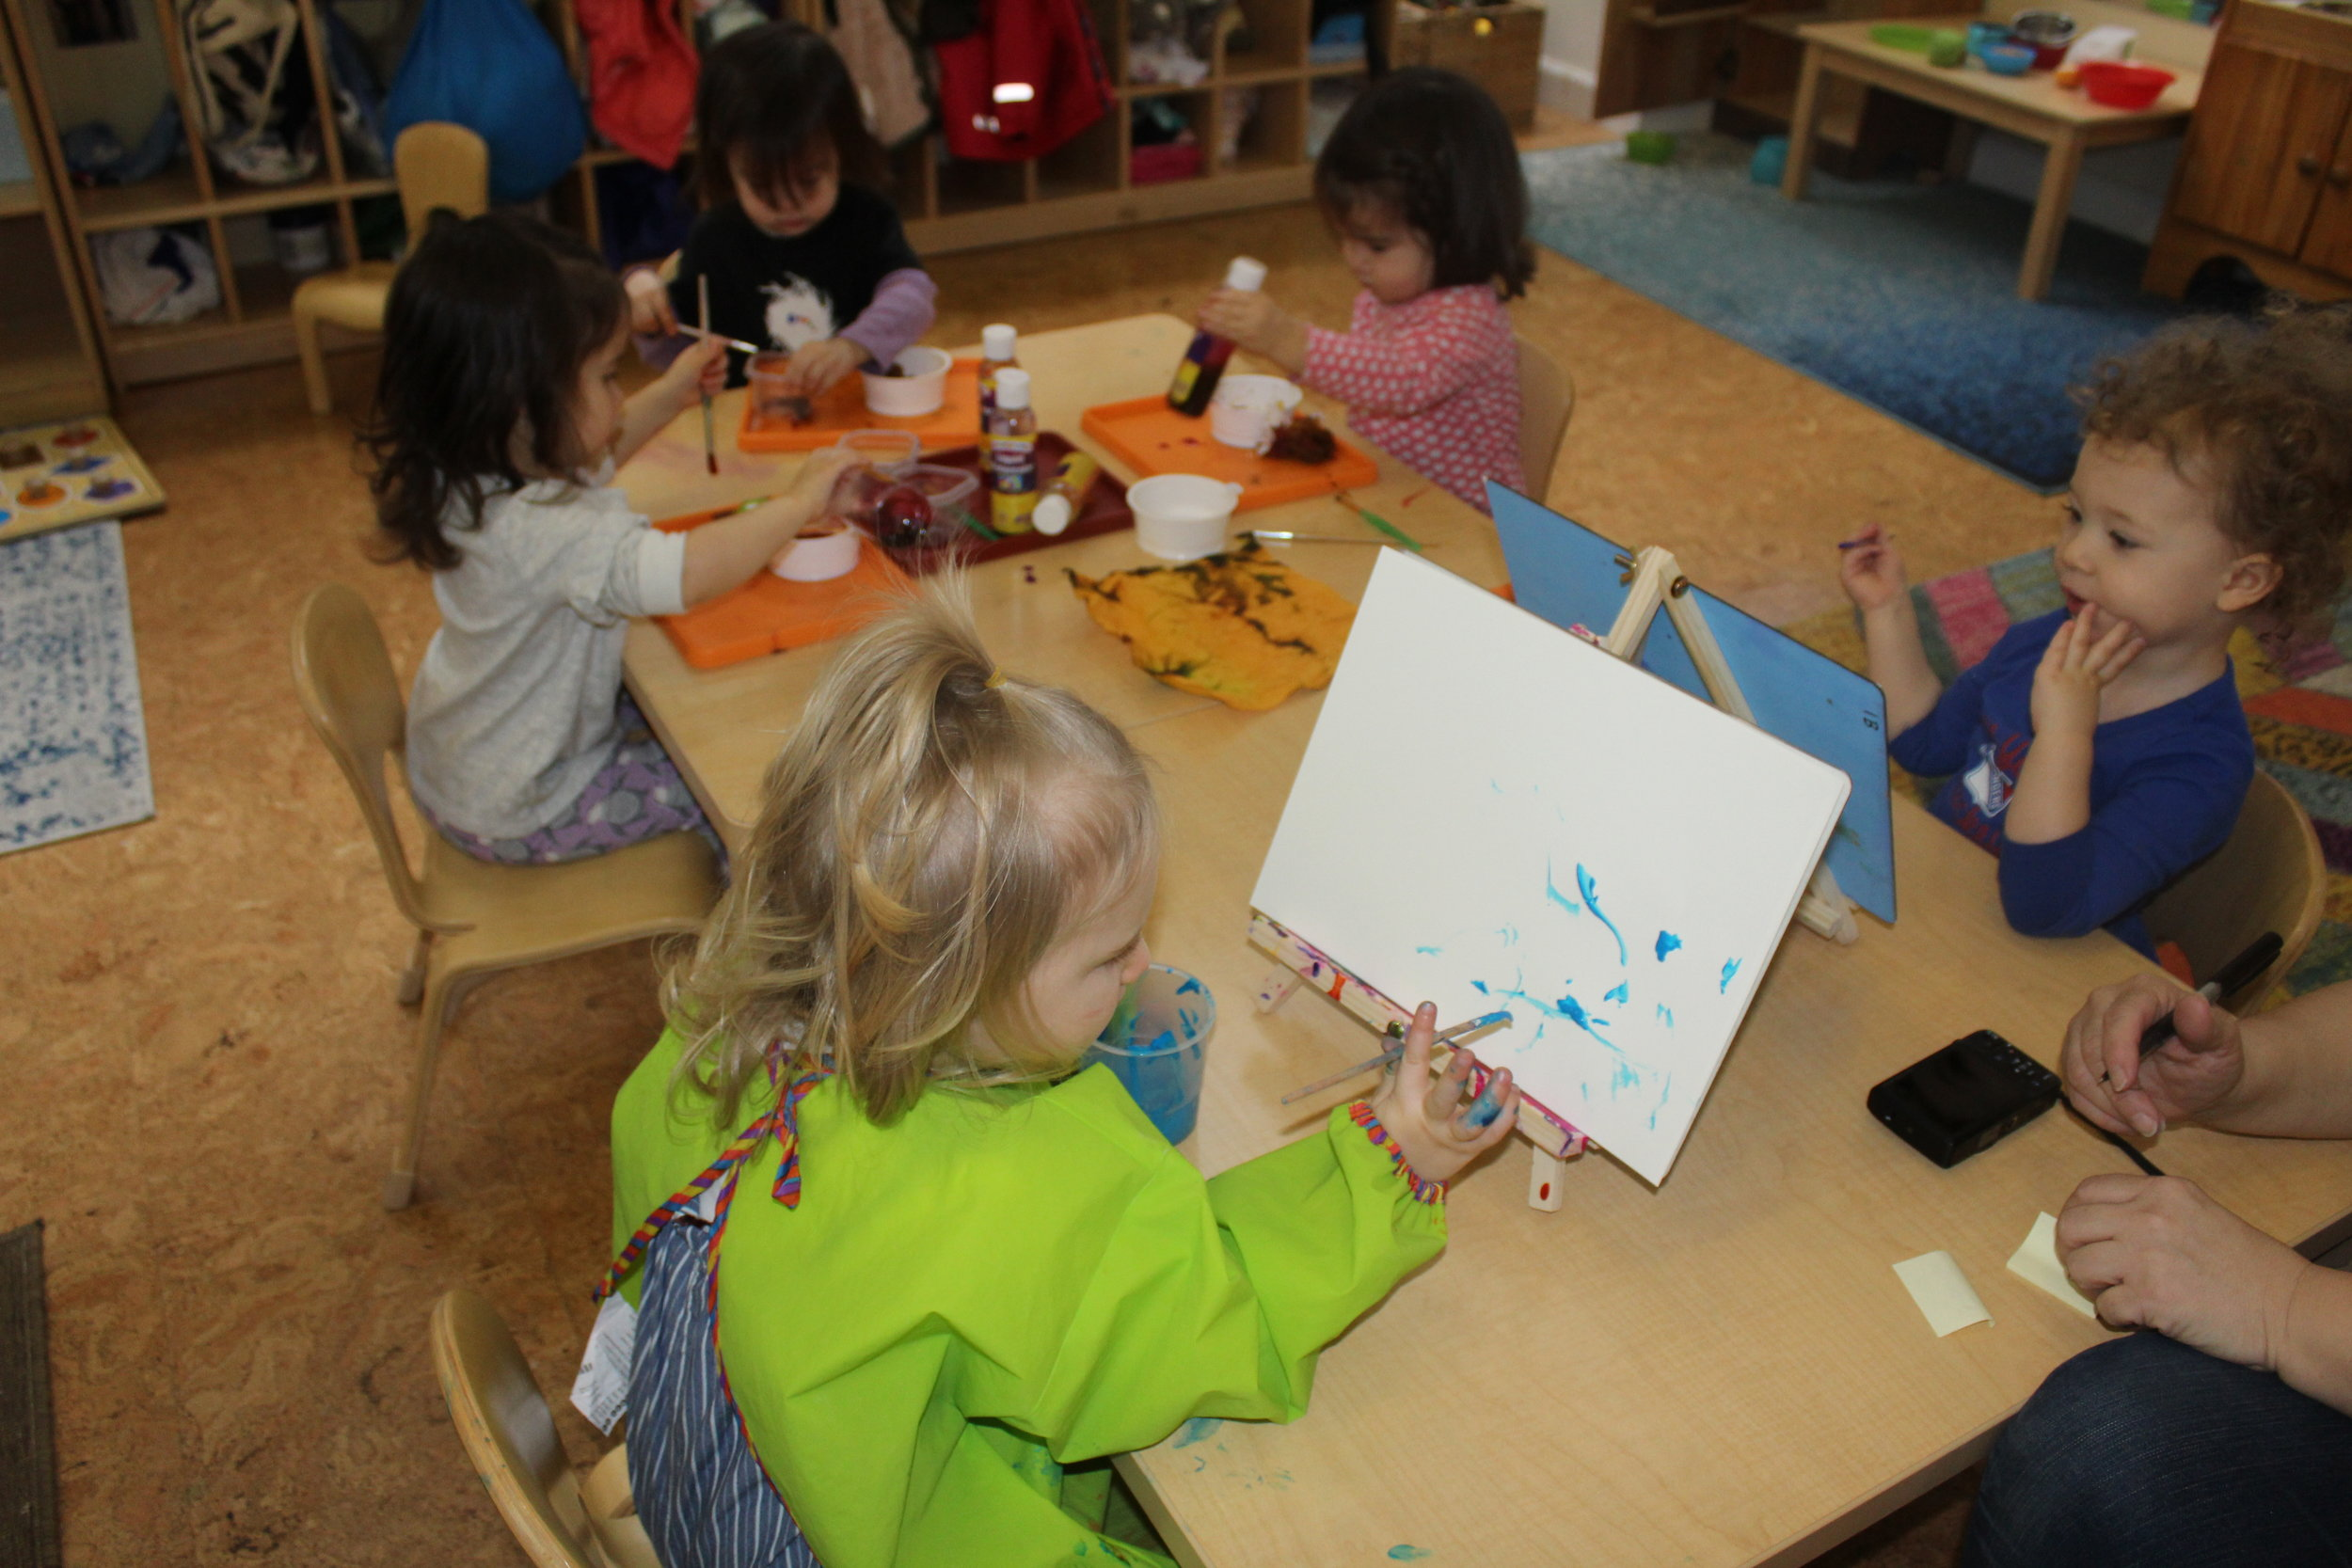 """As Remy was painting, the teacher asked her, What are you drawing, Remy? Remy gazes at her art piece with a keen eye. She appears to be observing carefully everything she has drawn.  Madeline indicated that she was drawing a """"Pappaion"""" is a French word for a type of butterfly.  ."""